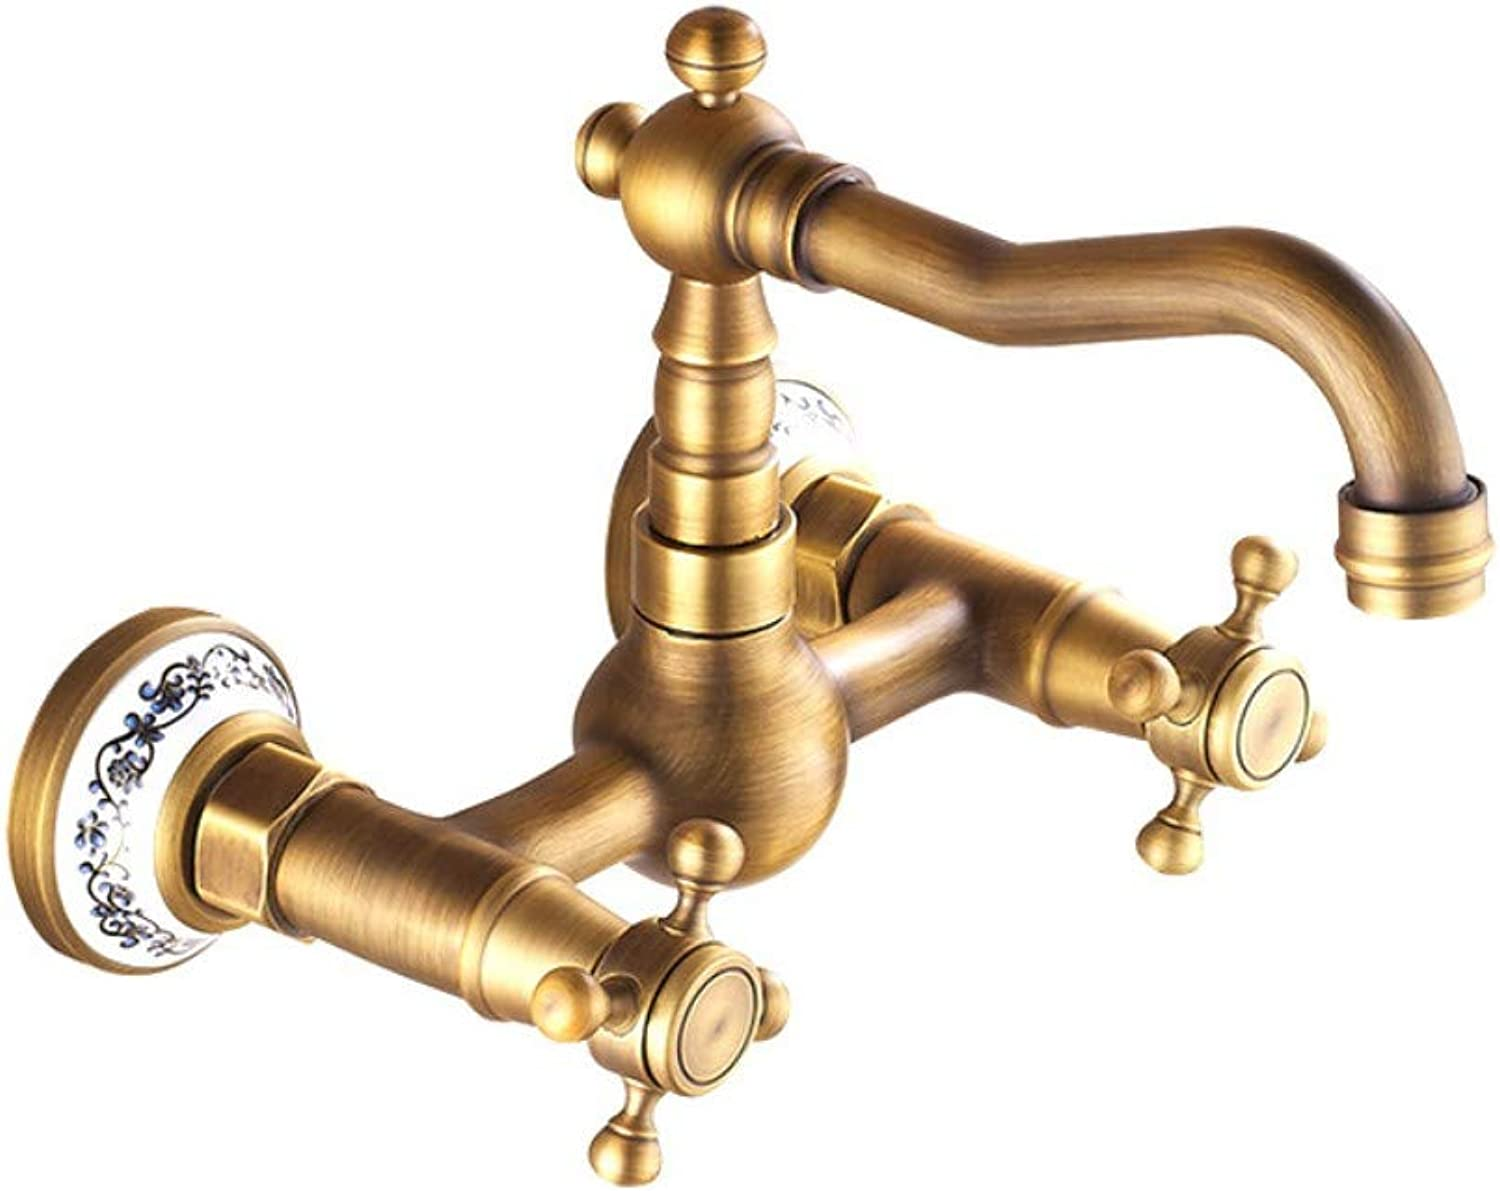 Retro Wall Faucet Double Handle Spiral Basin Faucet Copper hot and Cold Mixed Faucet Antique Ceramic